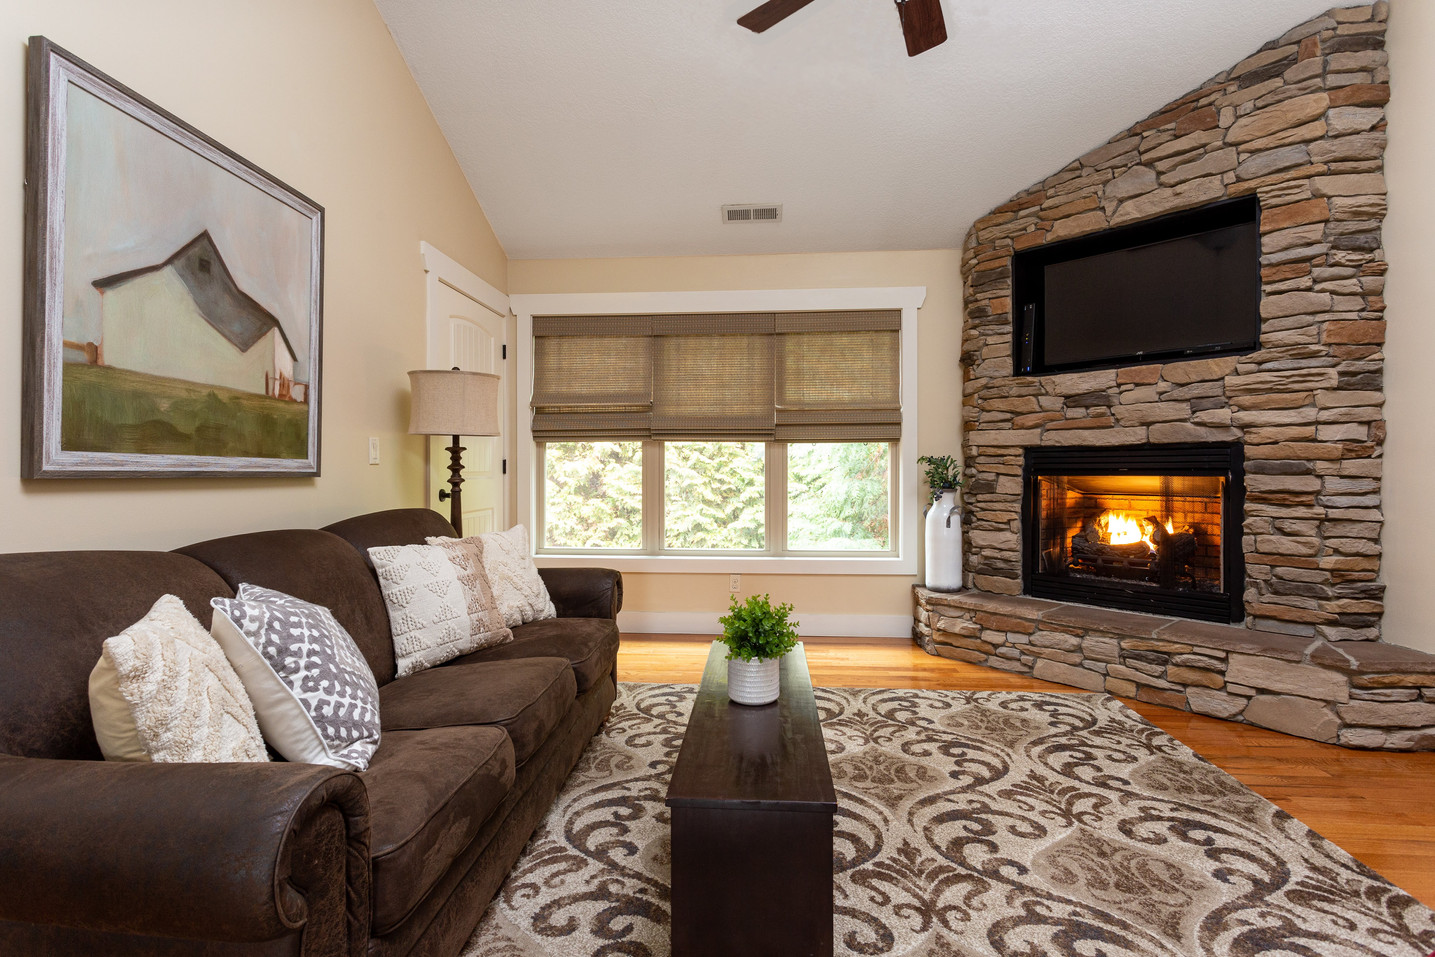 Enjoy a warm fireplace while watching TV